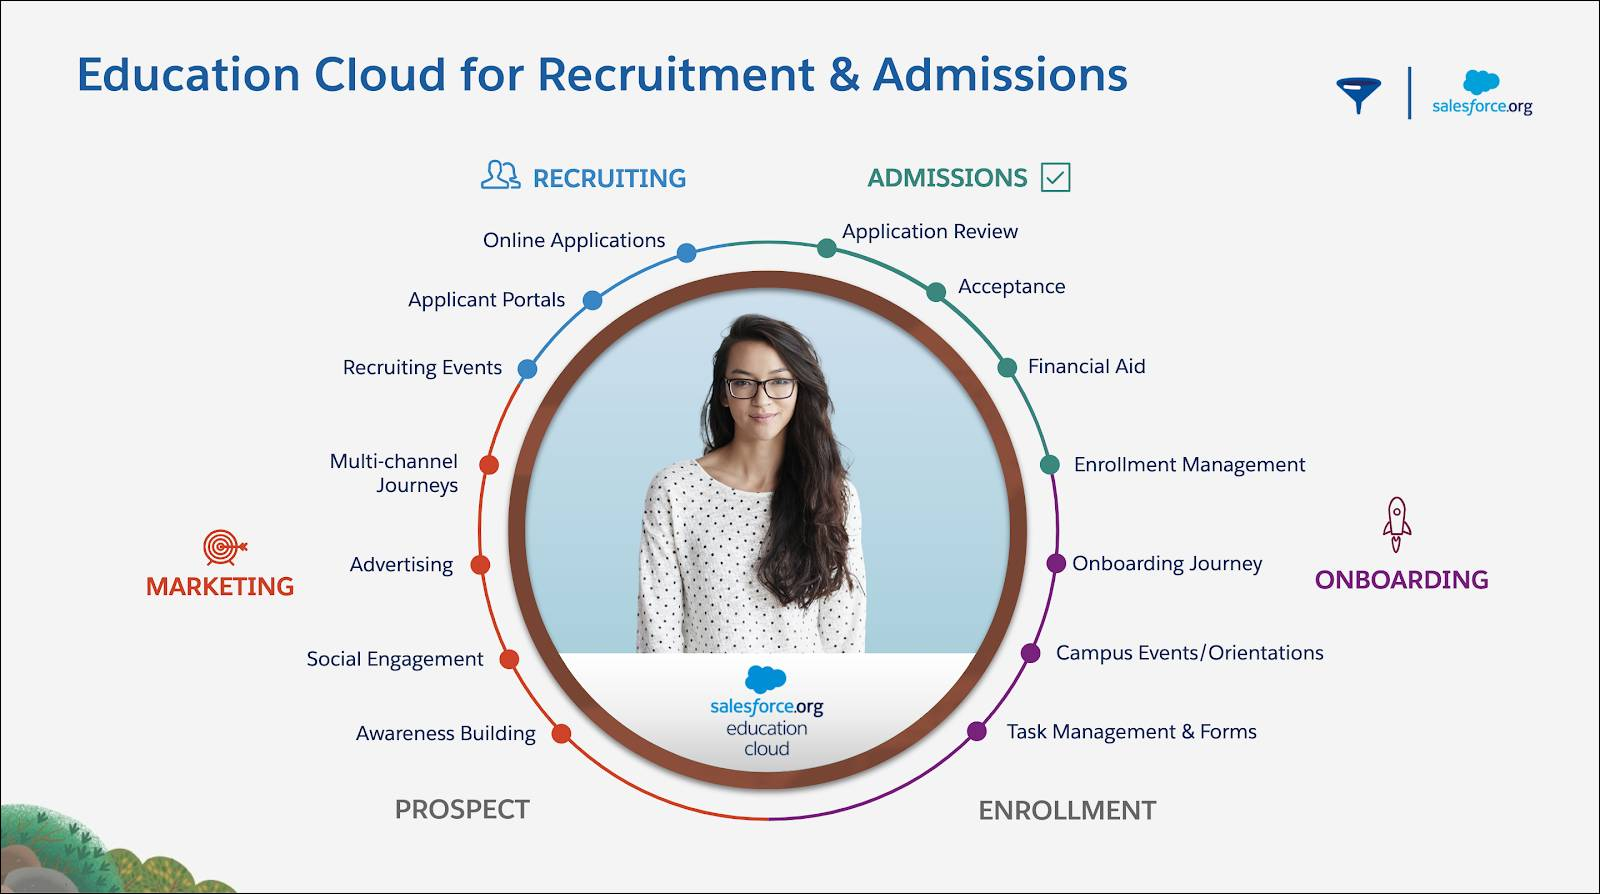 Education Cloud for Recruitment & Admissions helps institutions support students from the prospect phase to admission. Education Cloud provides tools for Marketing, Recruiting, Admissions, and Onboarding.